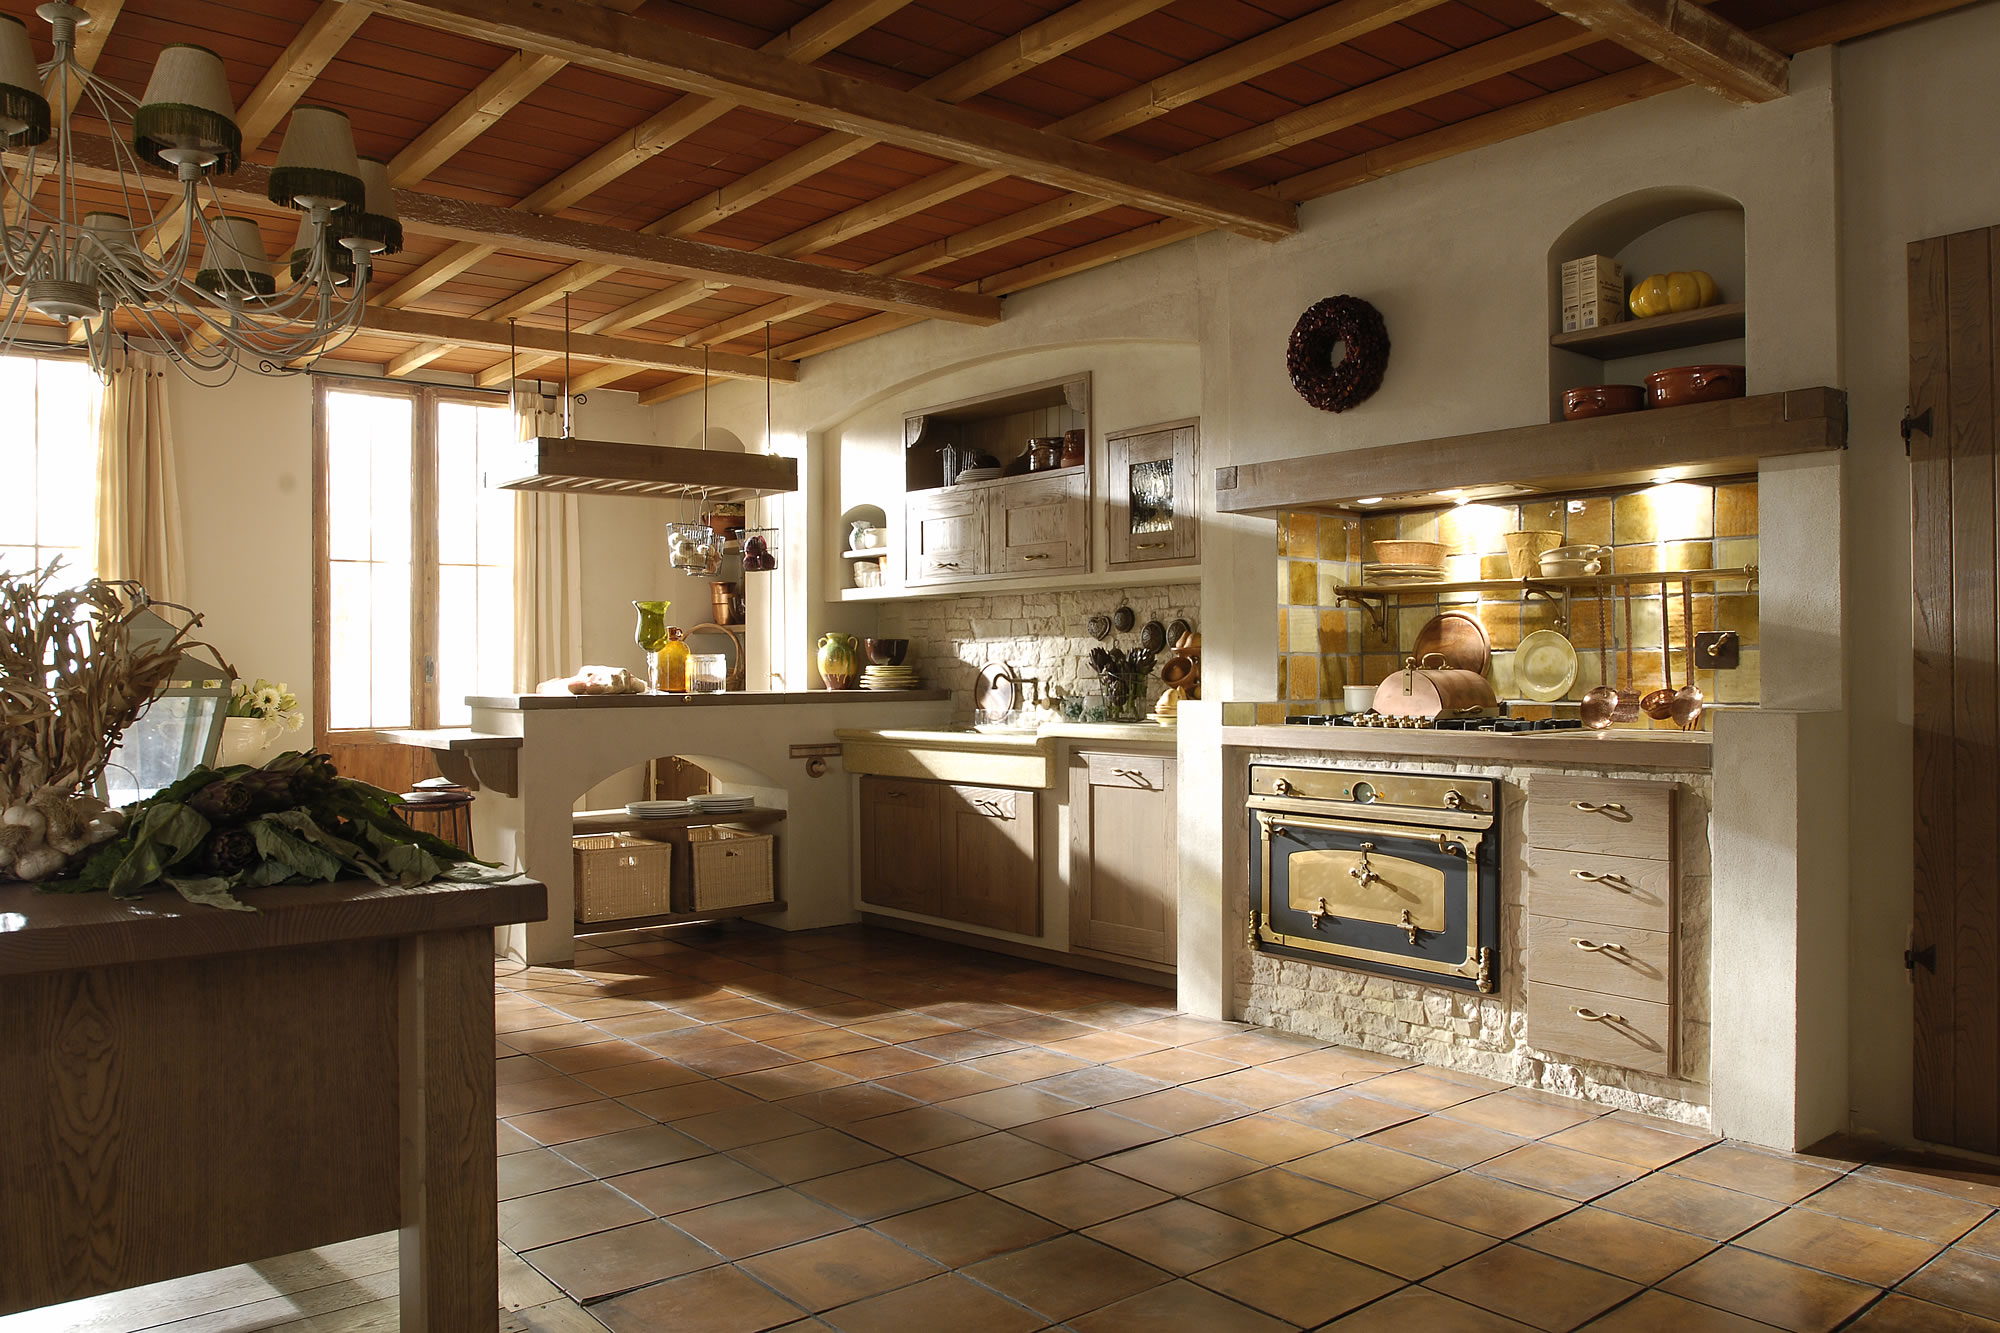 Italian country chic kitchens modular elegant kitchens solid wood rustic kitc...